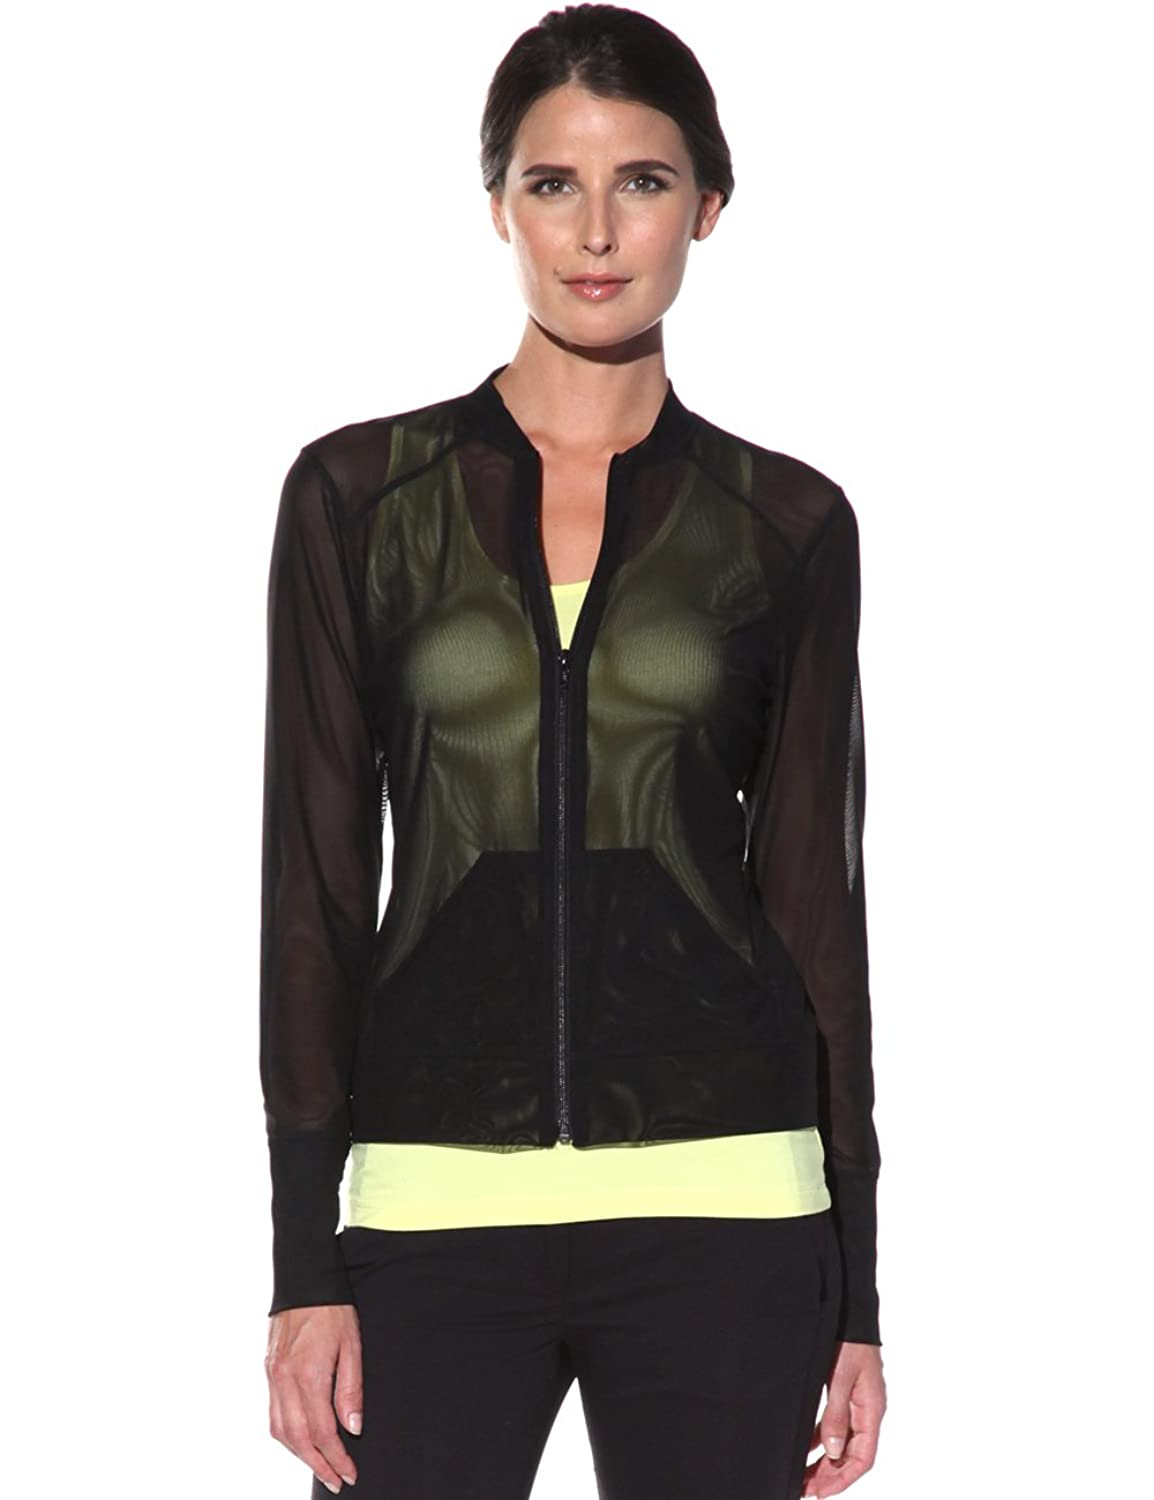 Anatomies Bailey Mesh Jacket At Amazon Womens Clothing Store